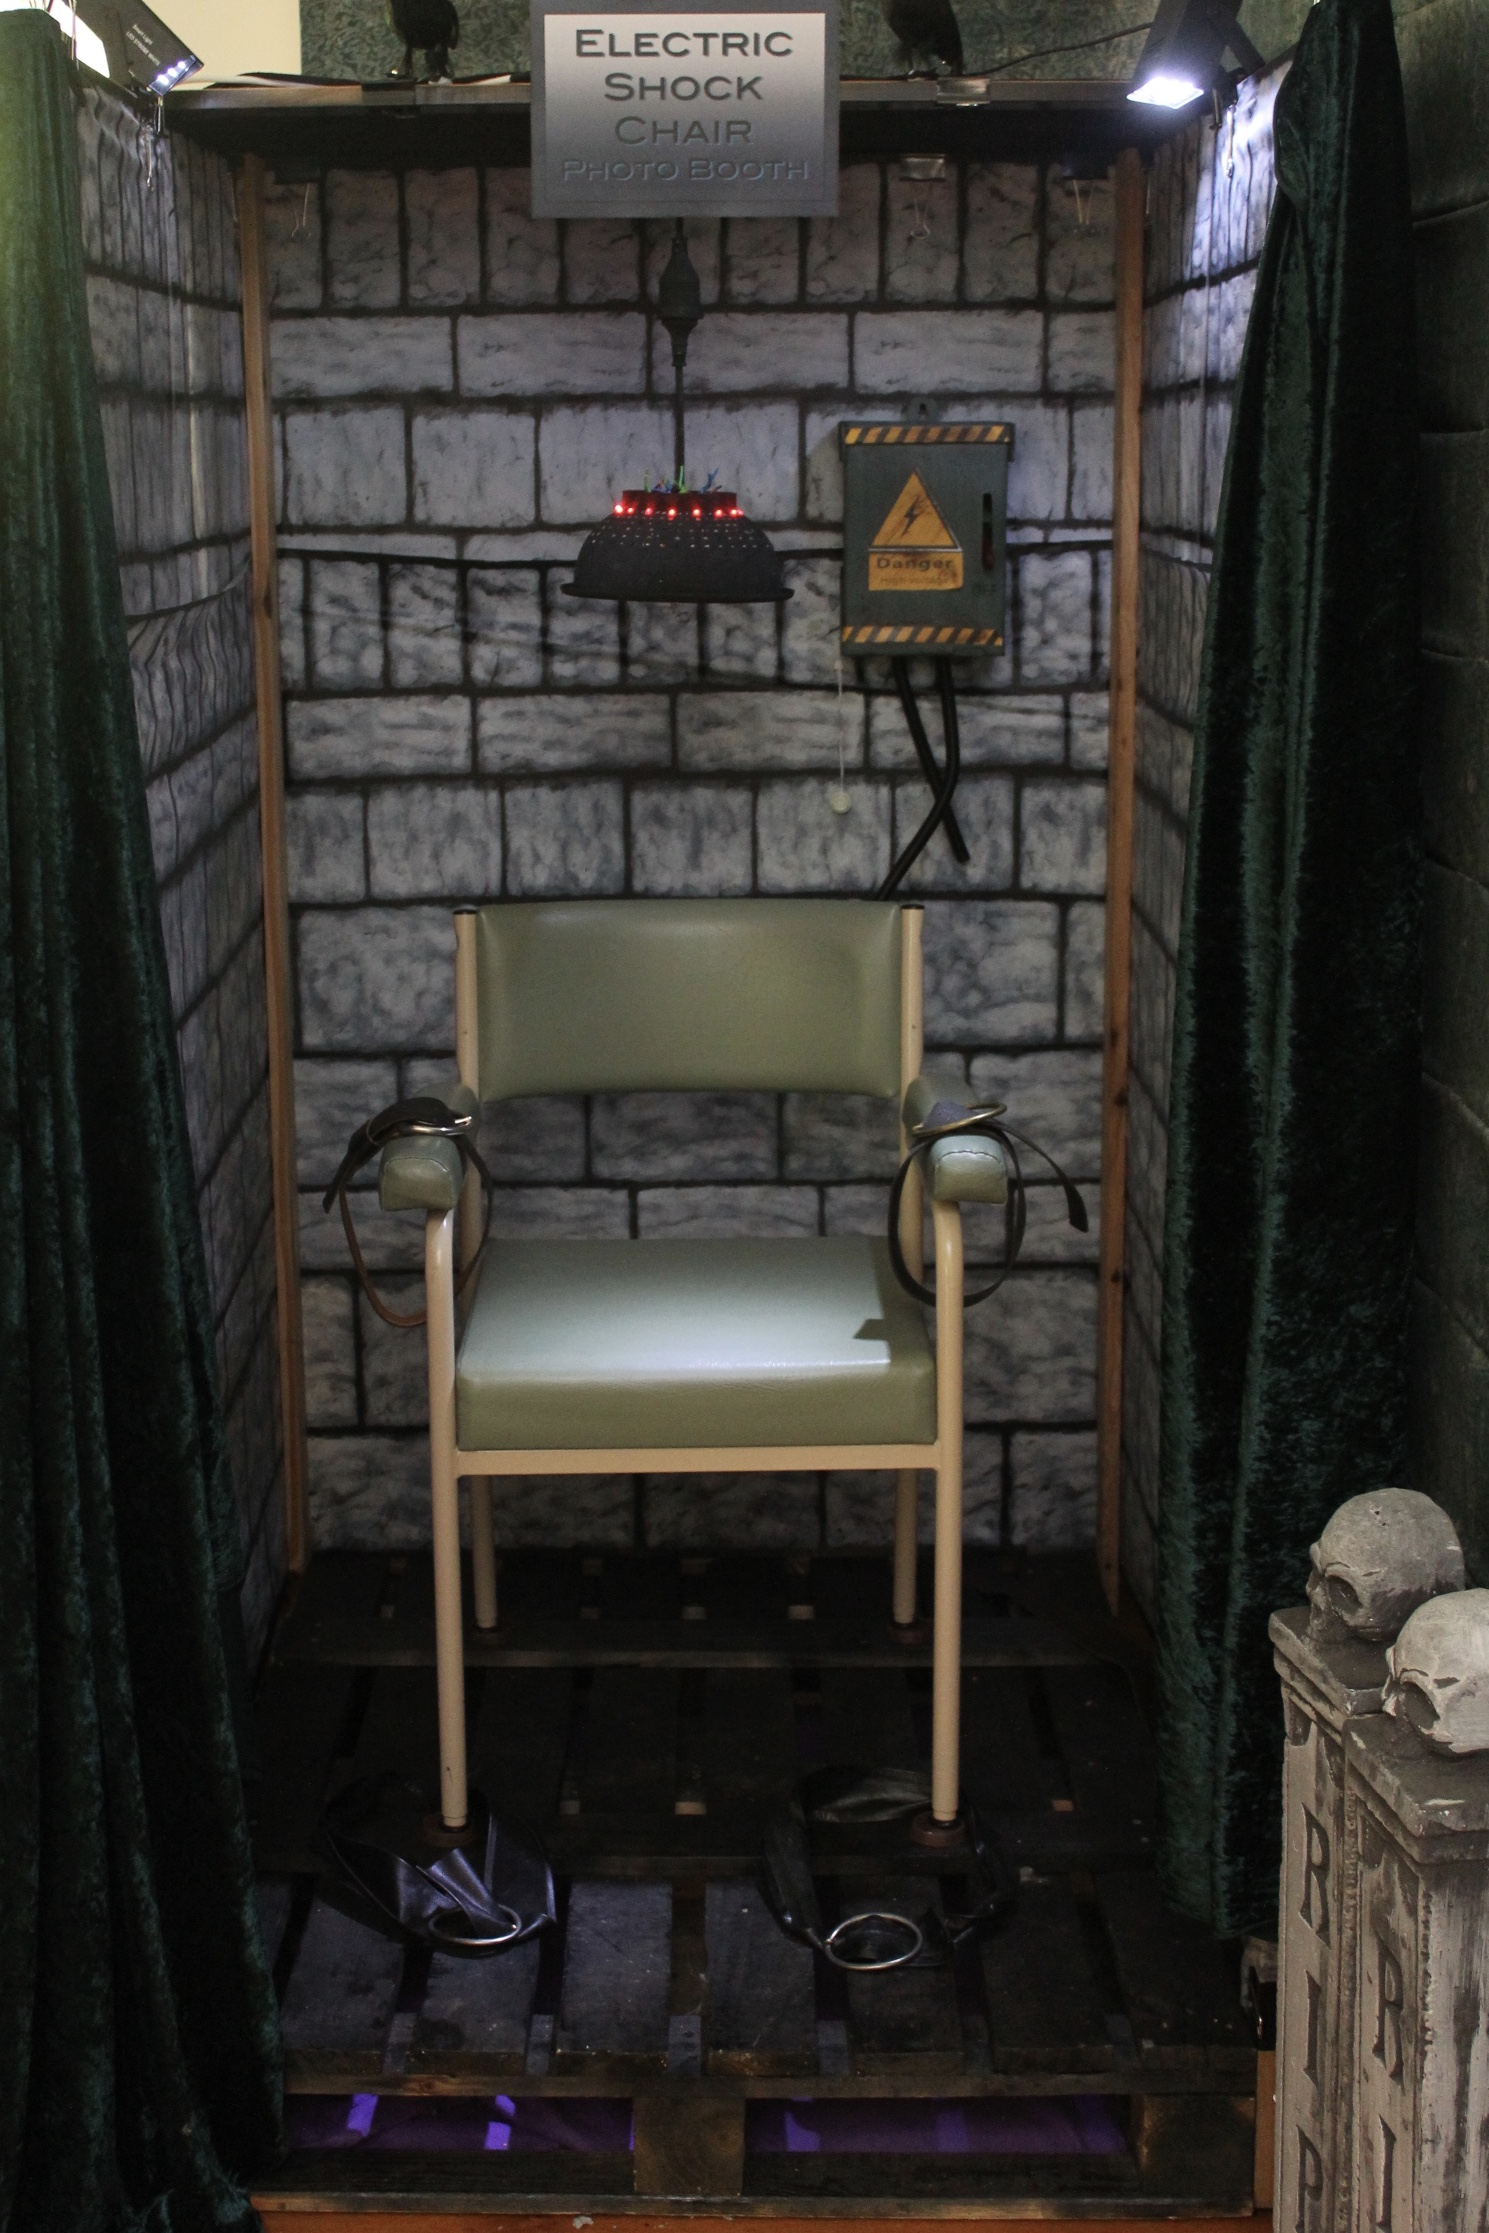 How to make an Electric Chair